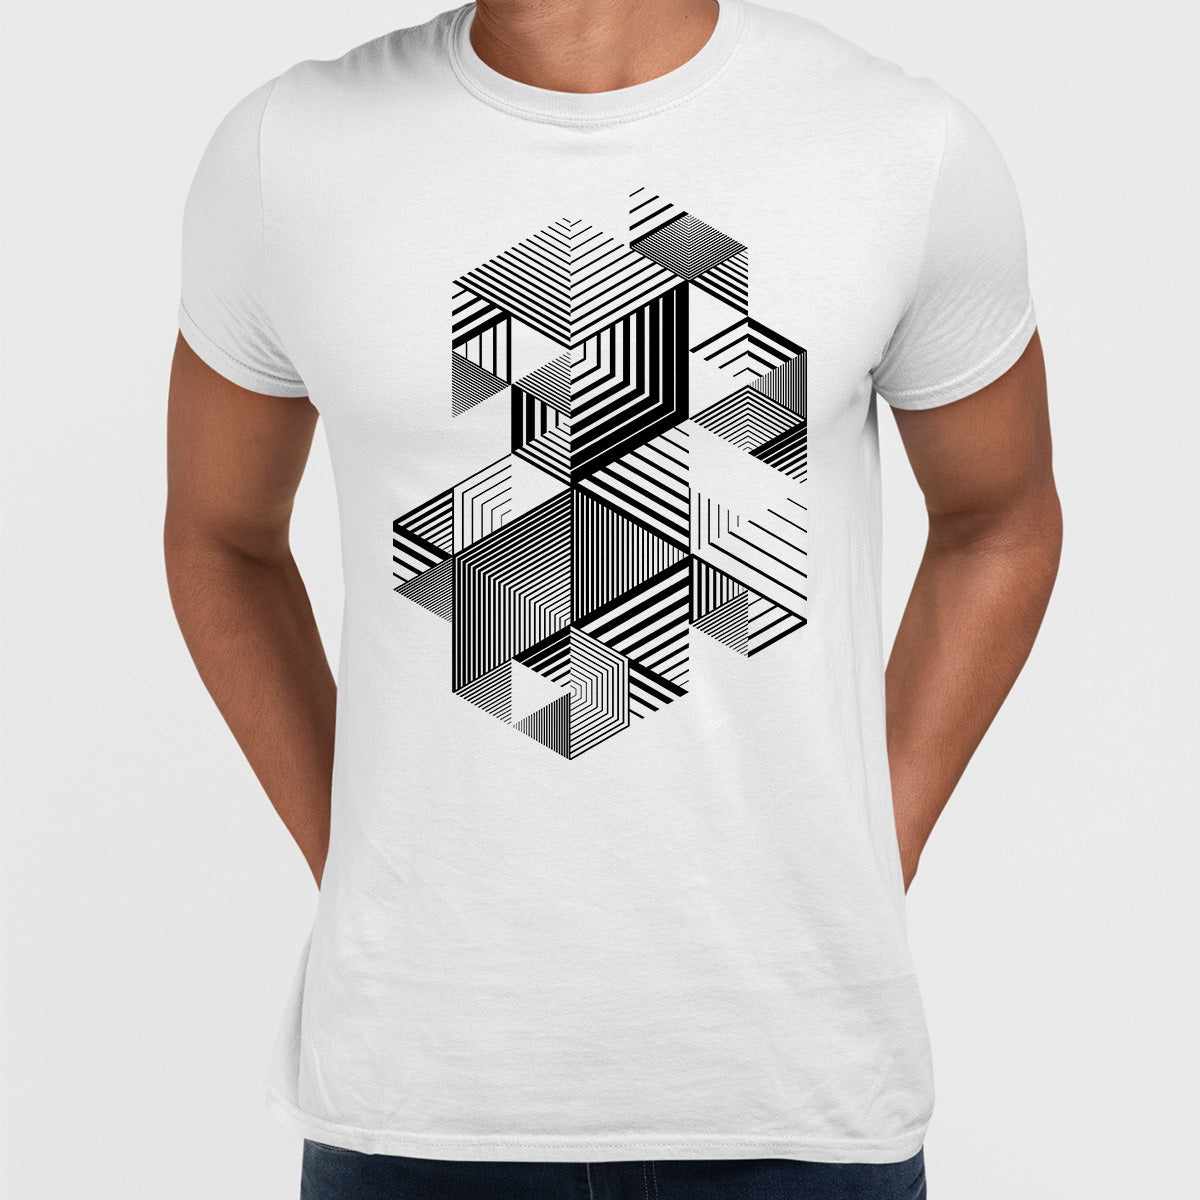 Linear striped abstract 3D dimensional retro style graphic element White T-shirt